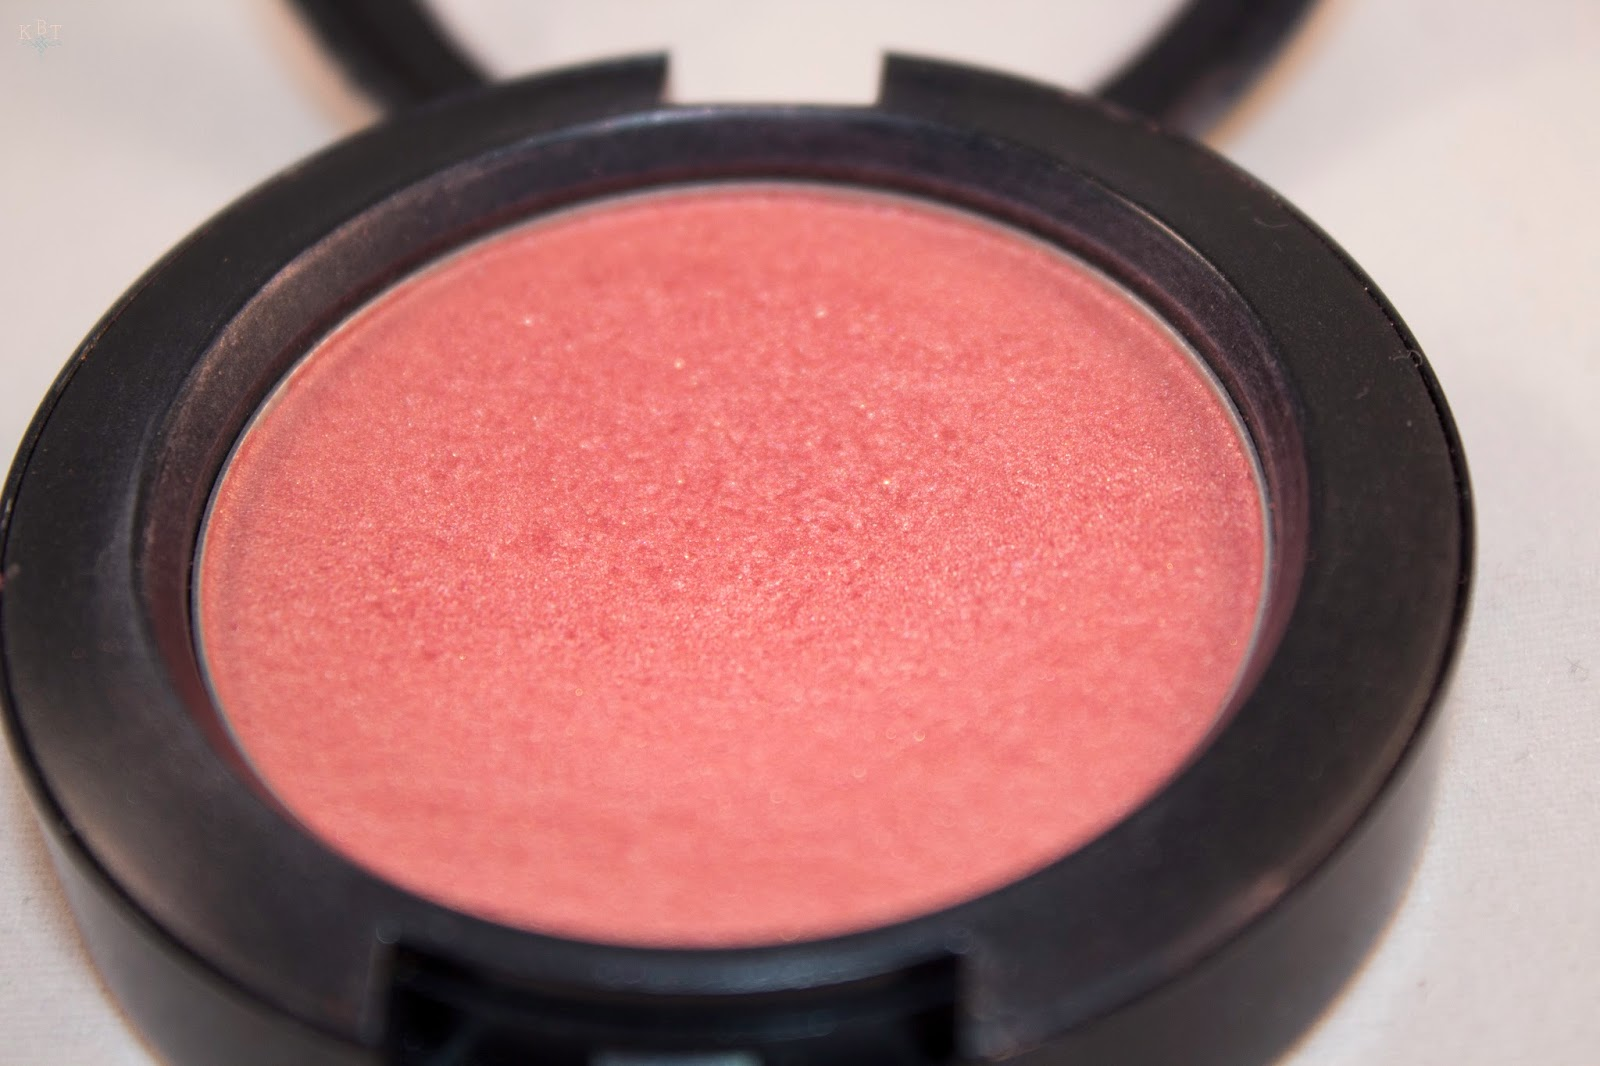 M.A.C Peachykeen Powder Blush - Blushing on Valentines ...